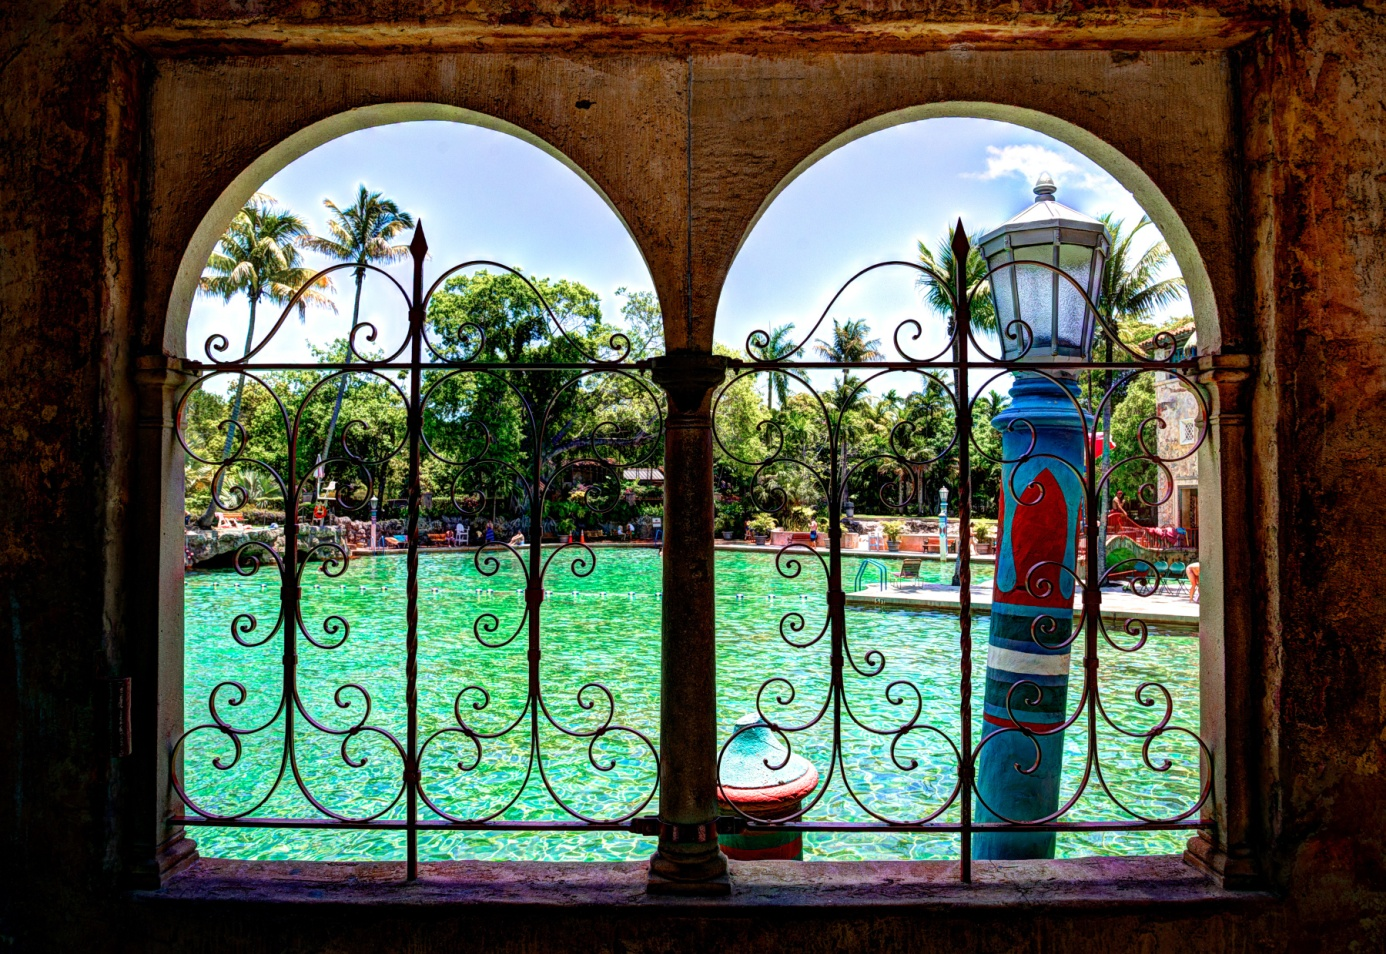 Venetian Pool in Coral Gables